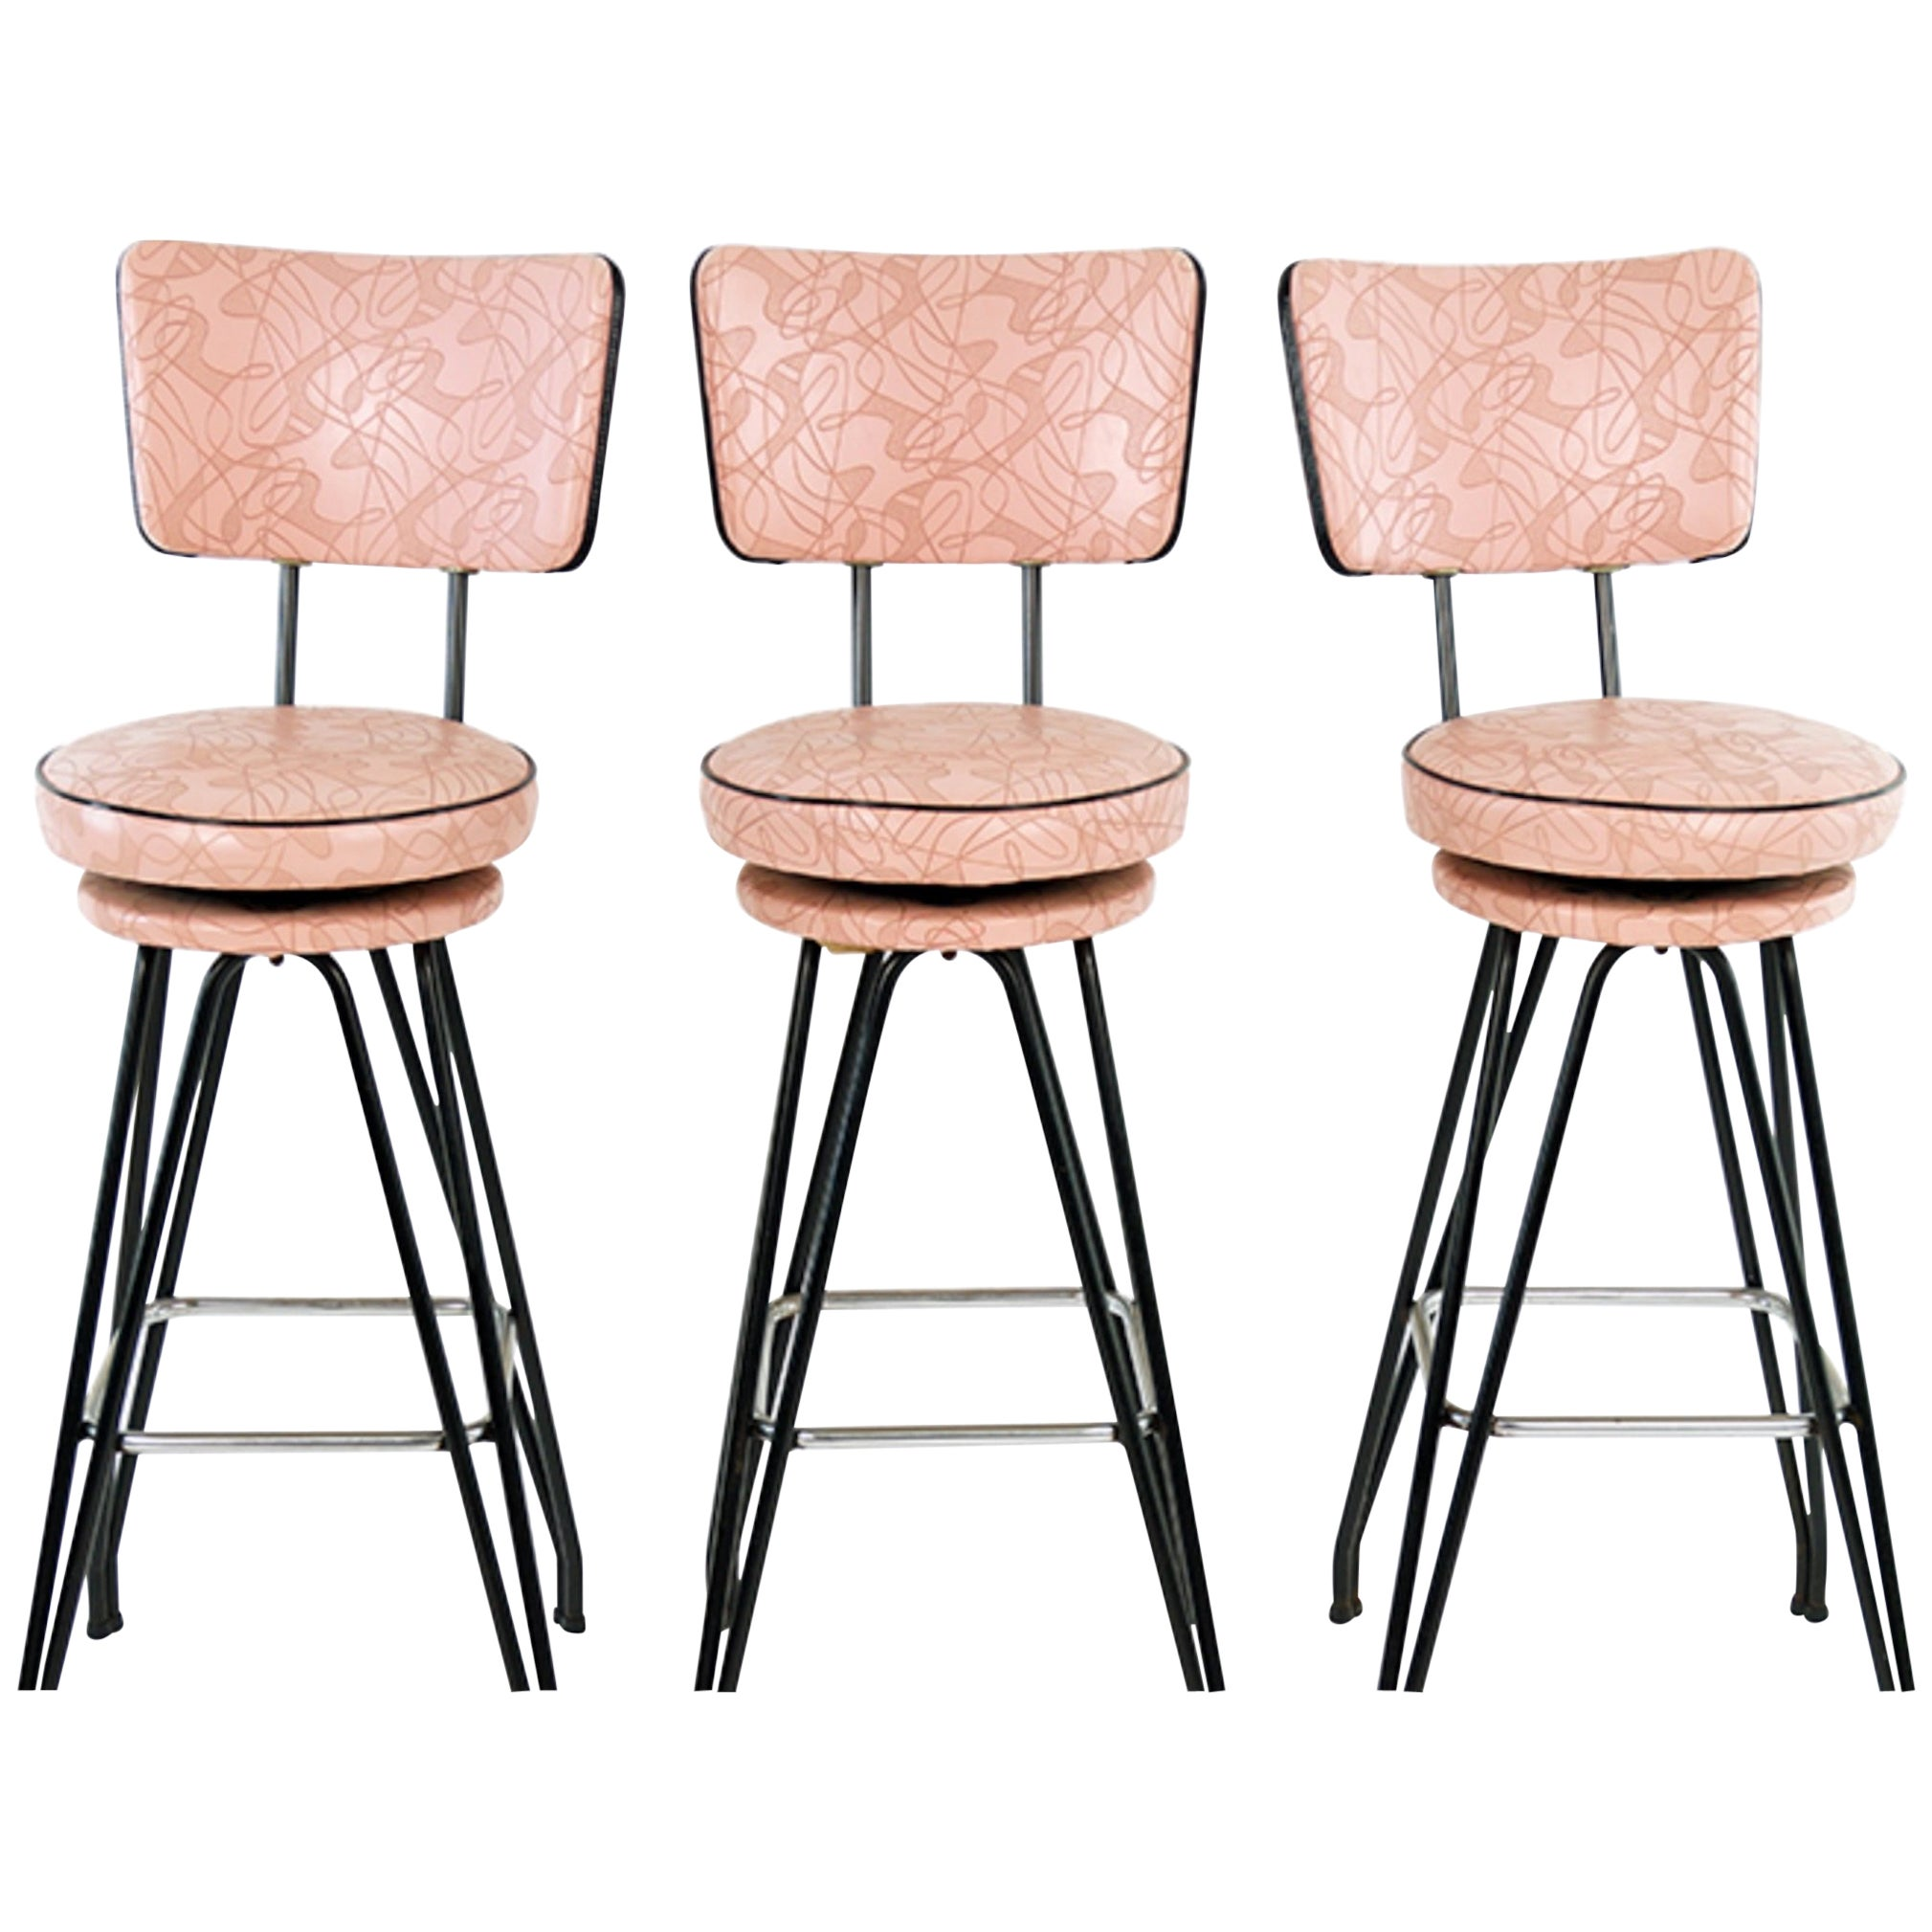 Pair Of Mid Century Modern Plycraft Bar Stools By Norman Cherner